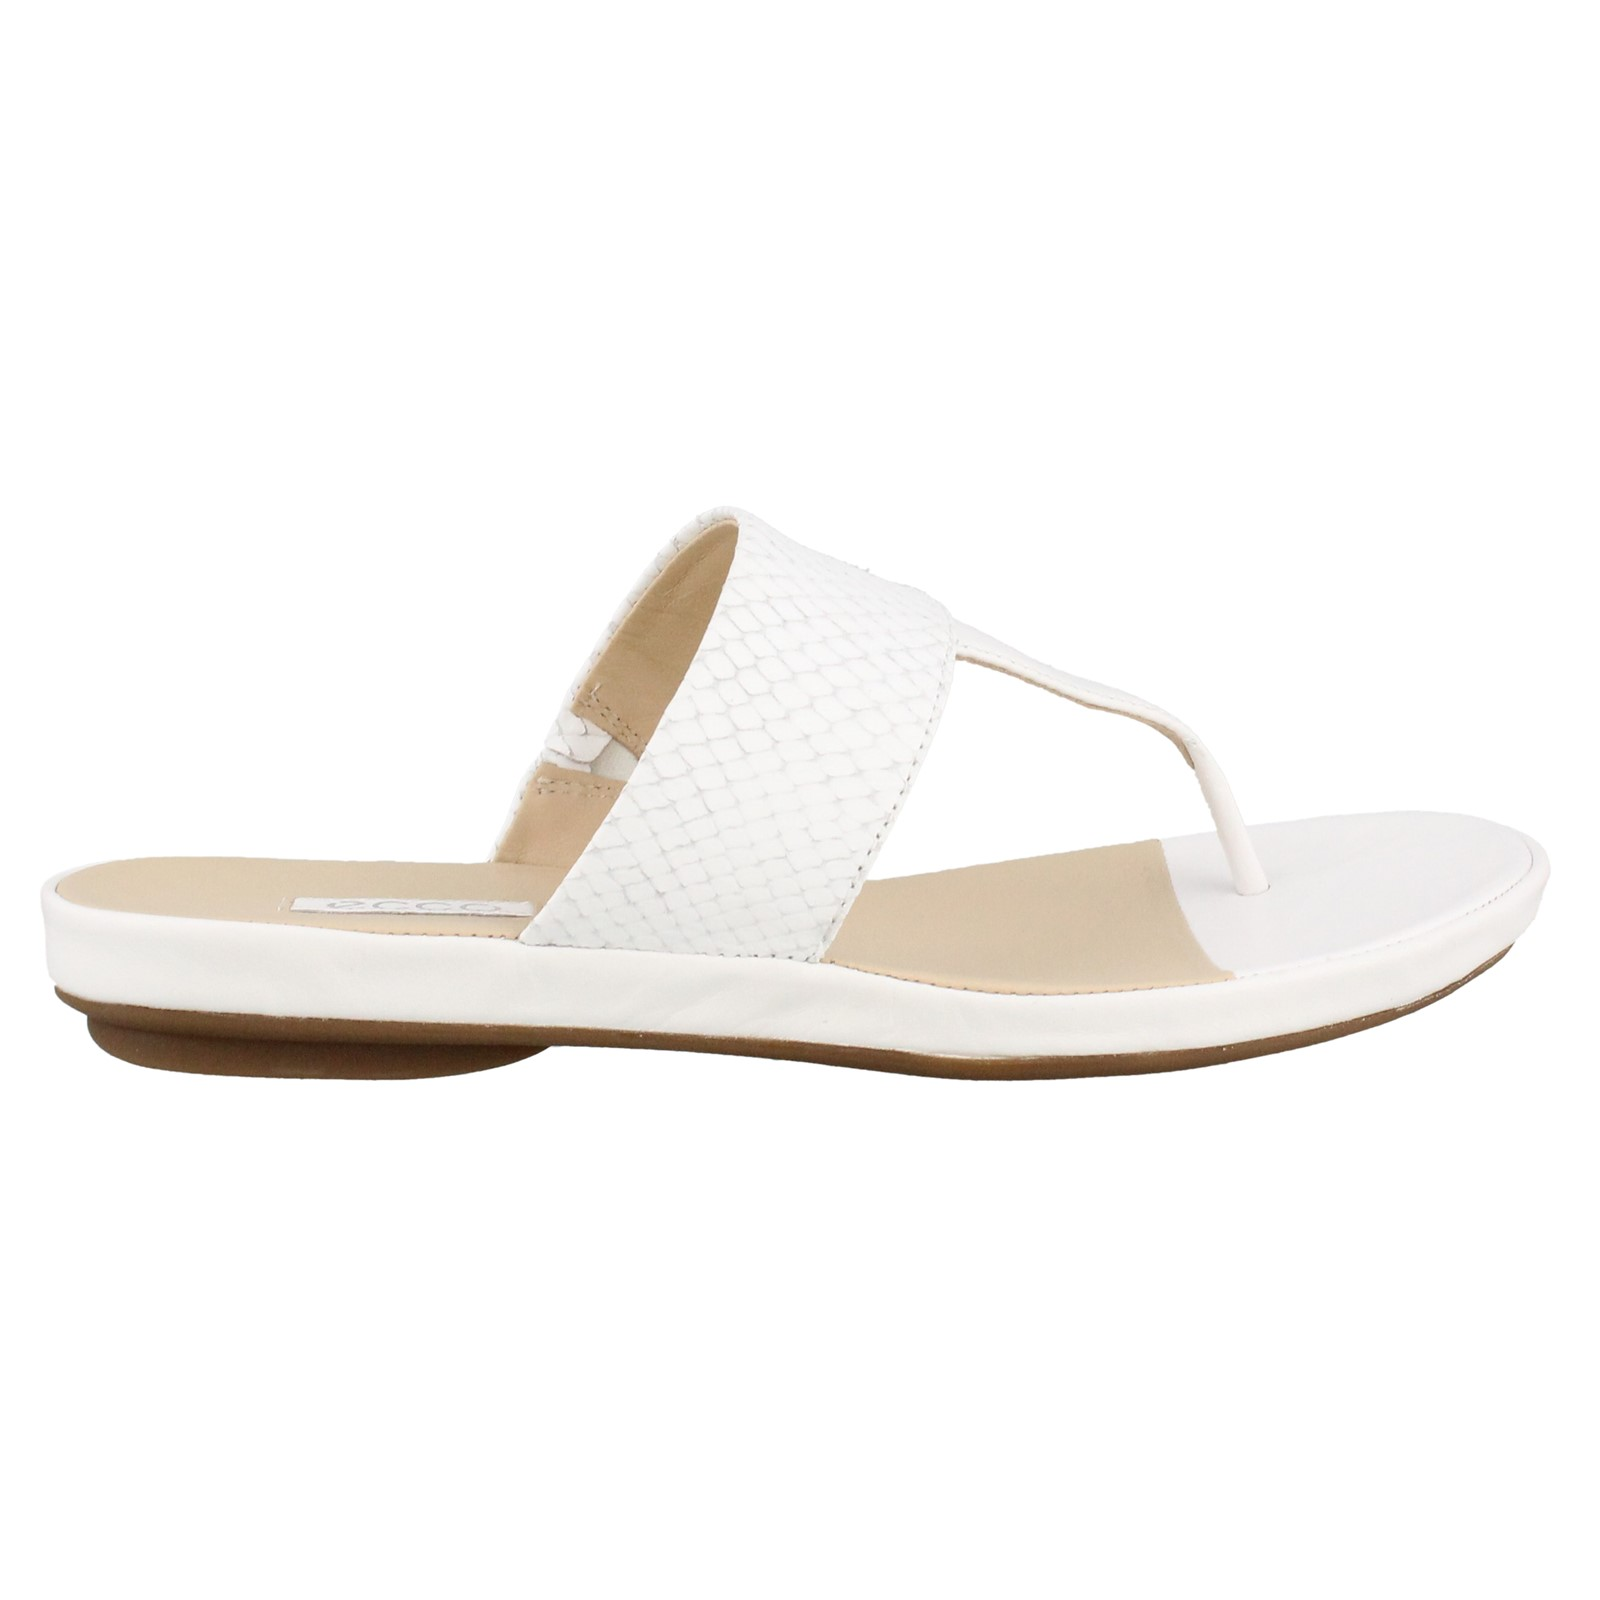 Women's Ecco, Tabora 15 thong Sandals